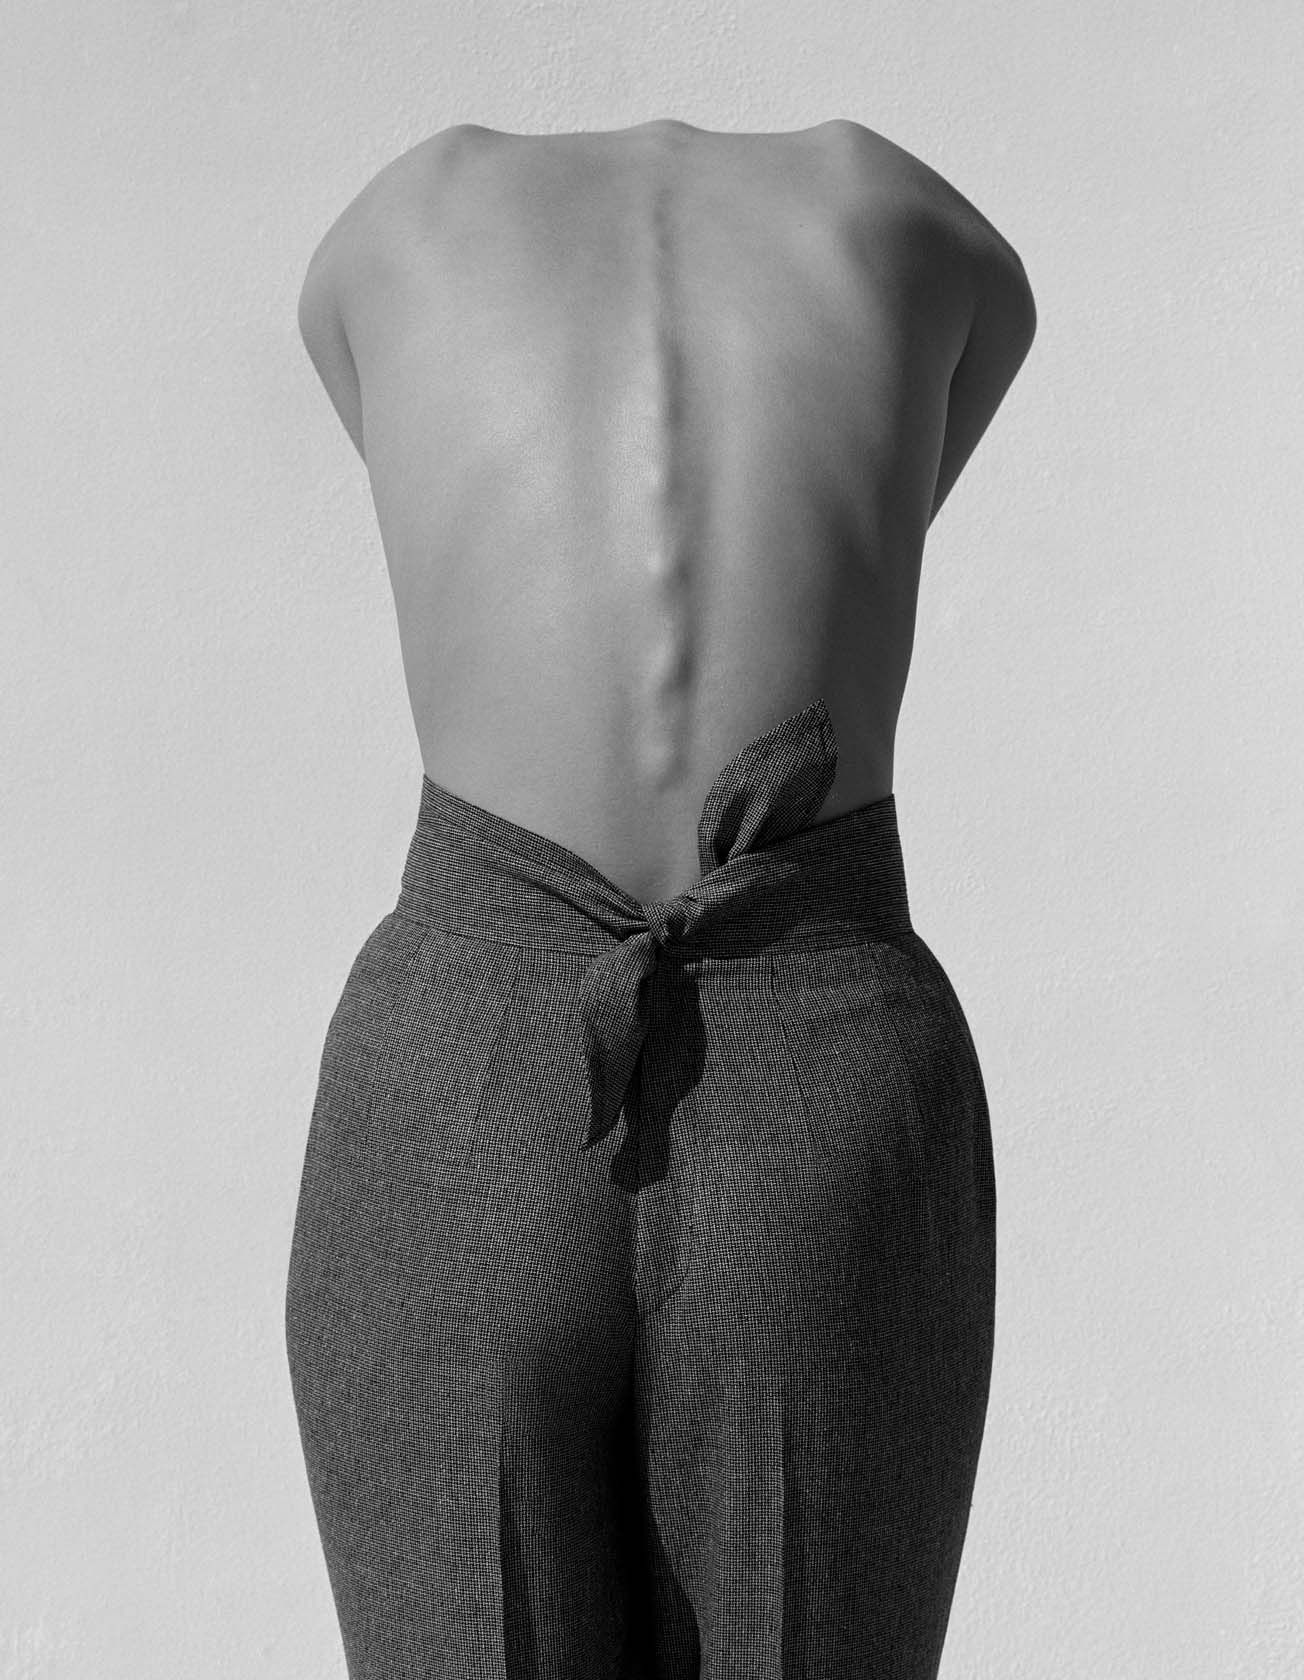 Herb Ritts, Pants (Back View), Los Angeles, 1988